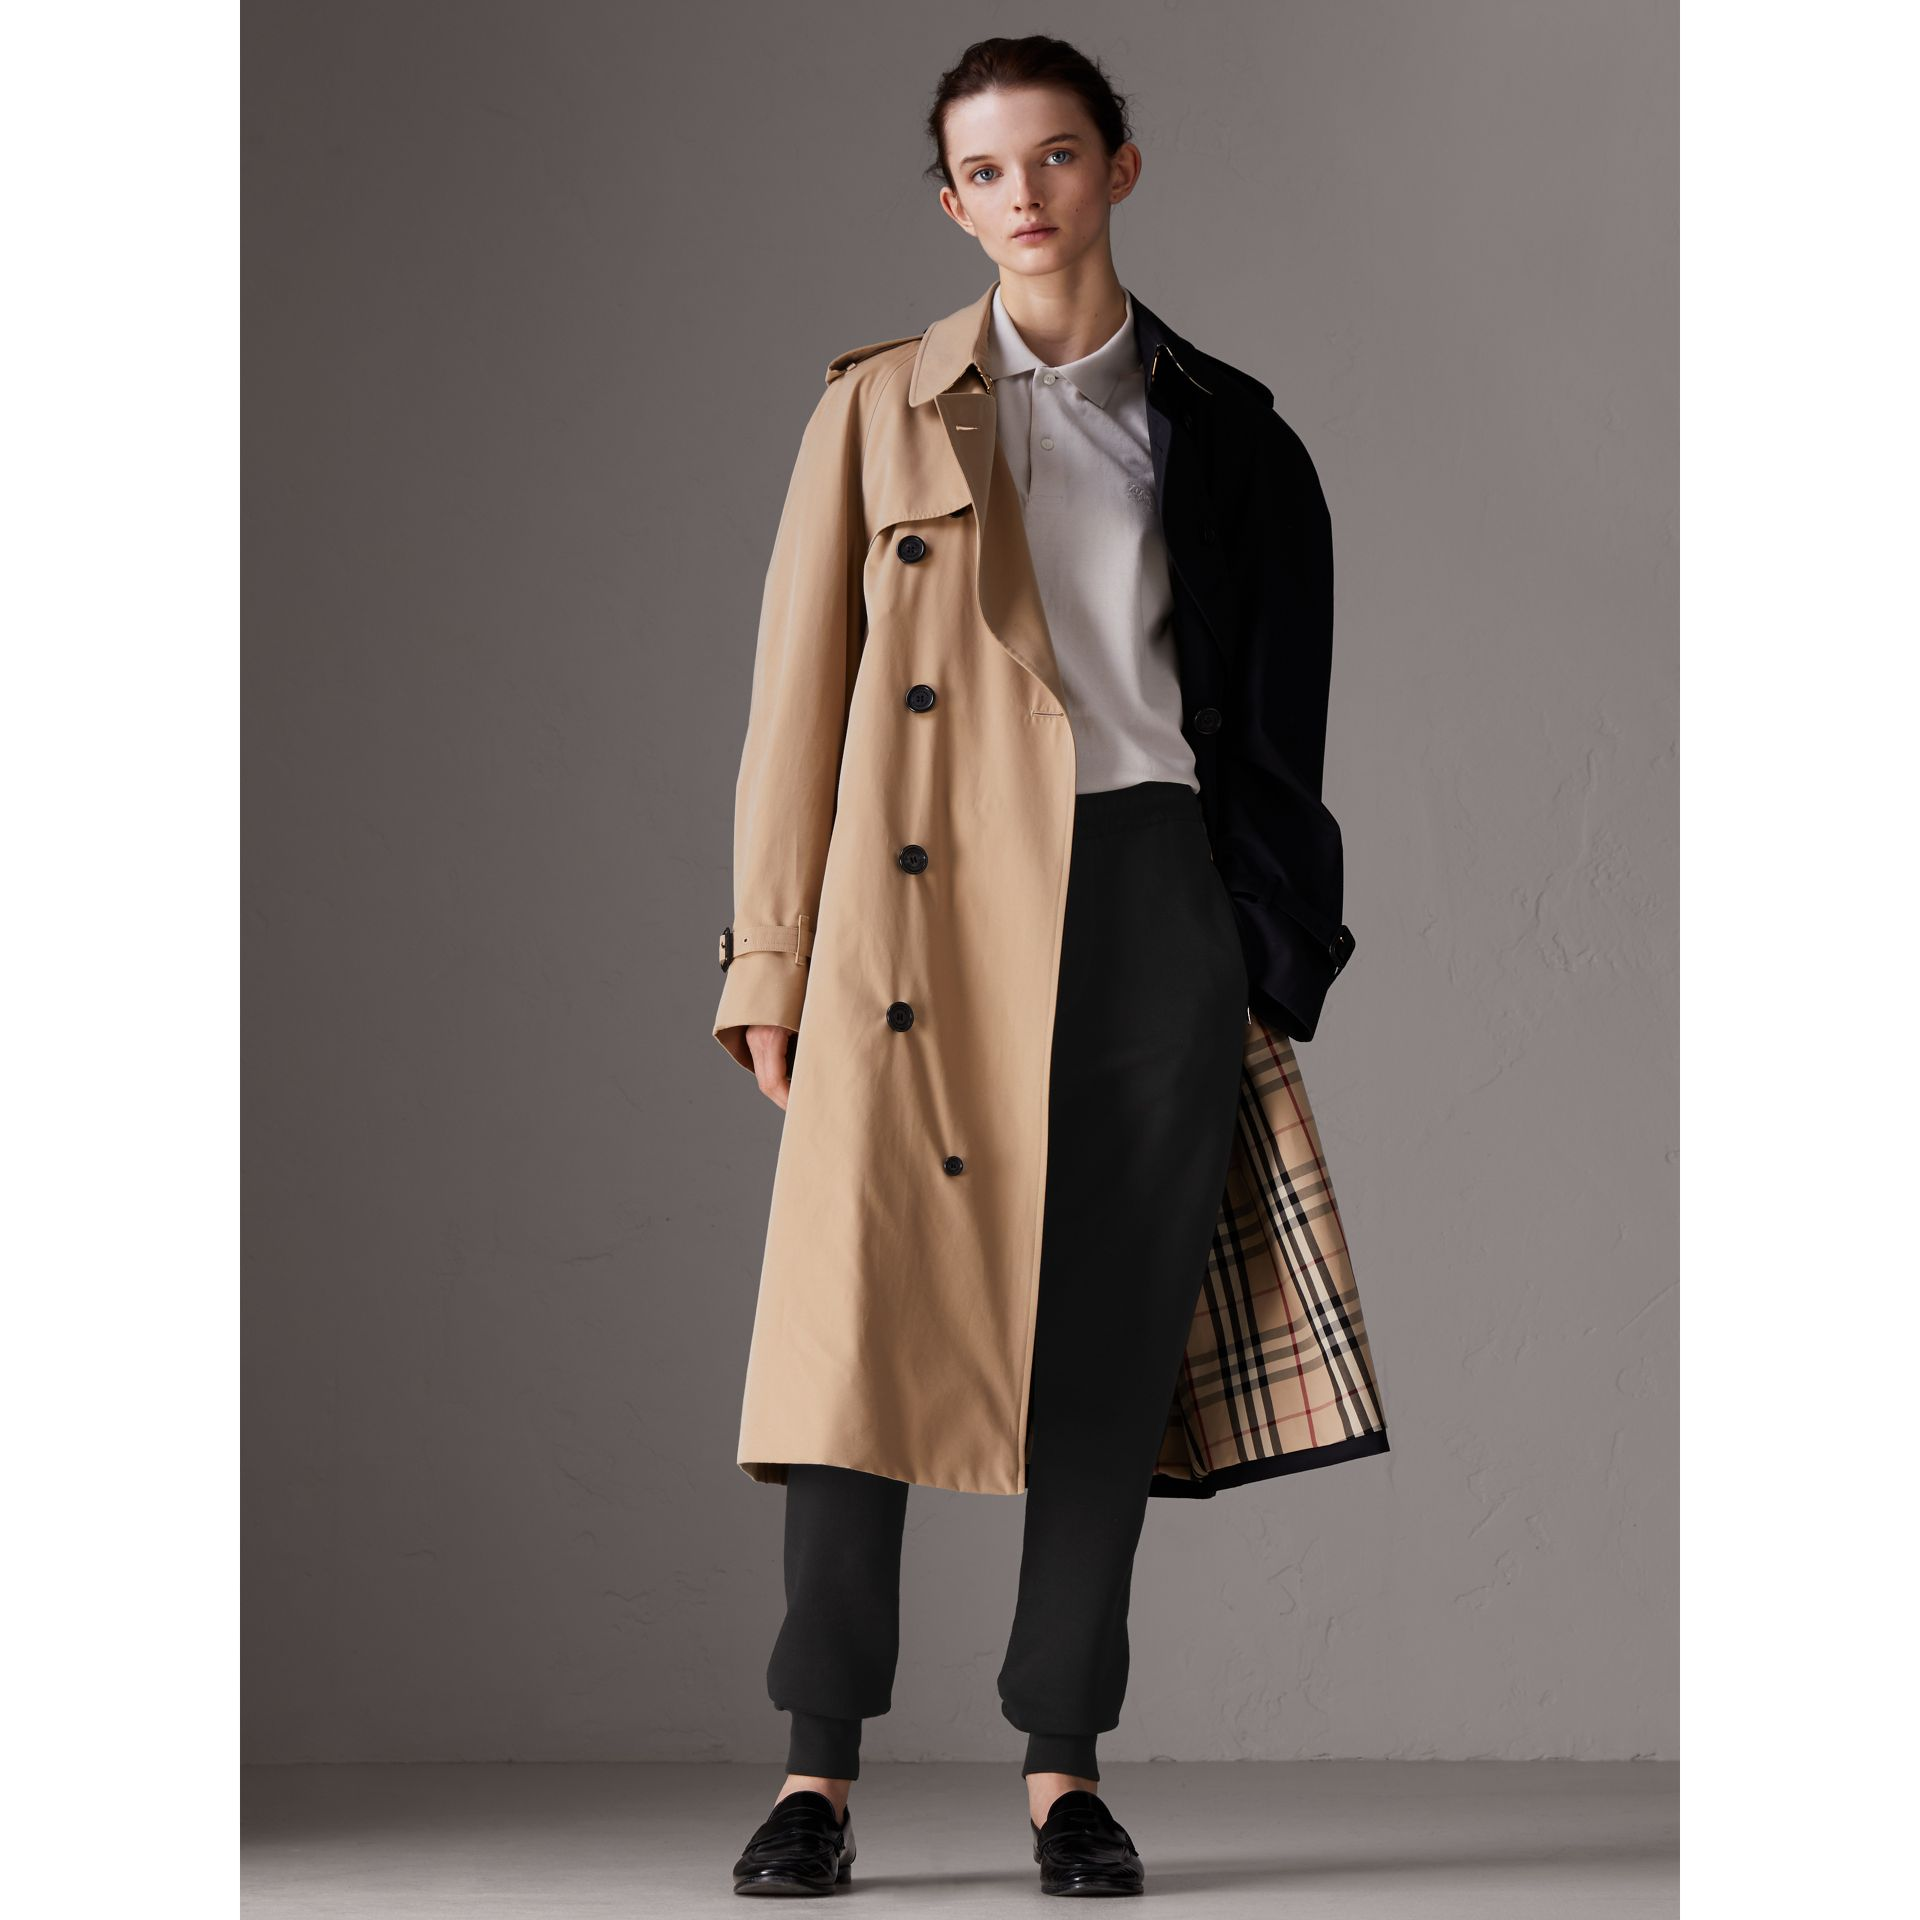 Gosha x Burberry Two-tone Trench Coat in Honey | Burberry Hong Kong - gallery image 3